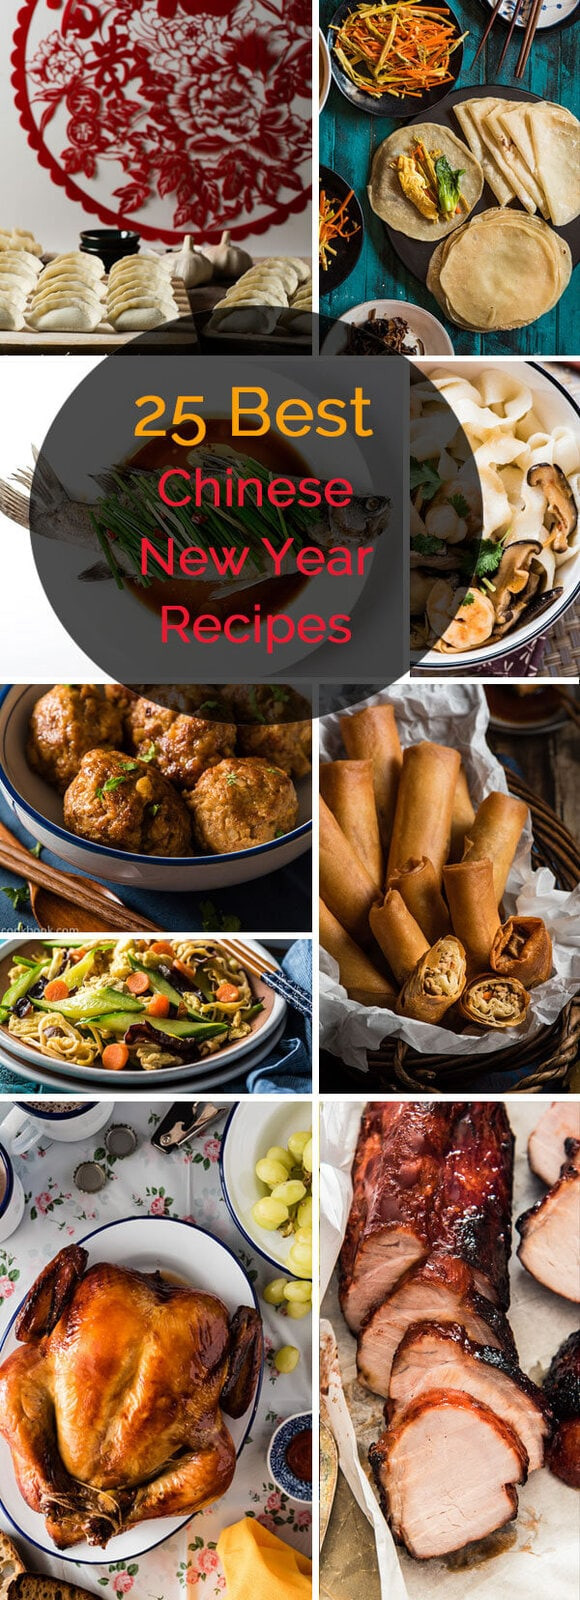 Chinese New Year Foods Recipes  Top 25 Chinese New Year Recipes